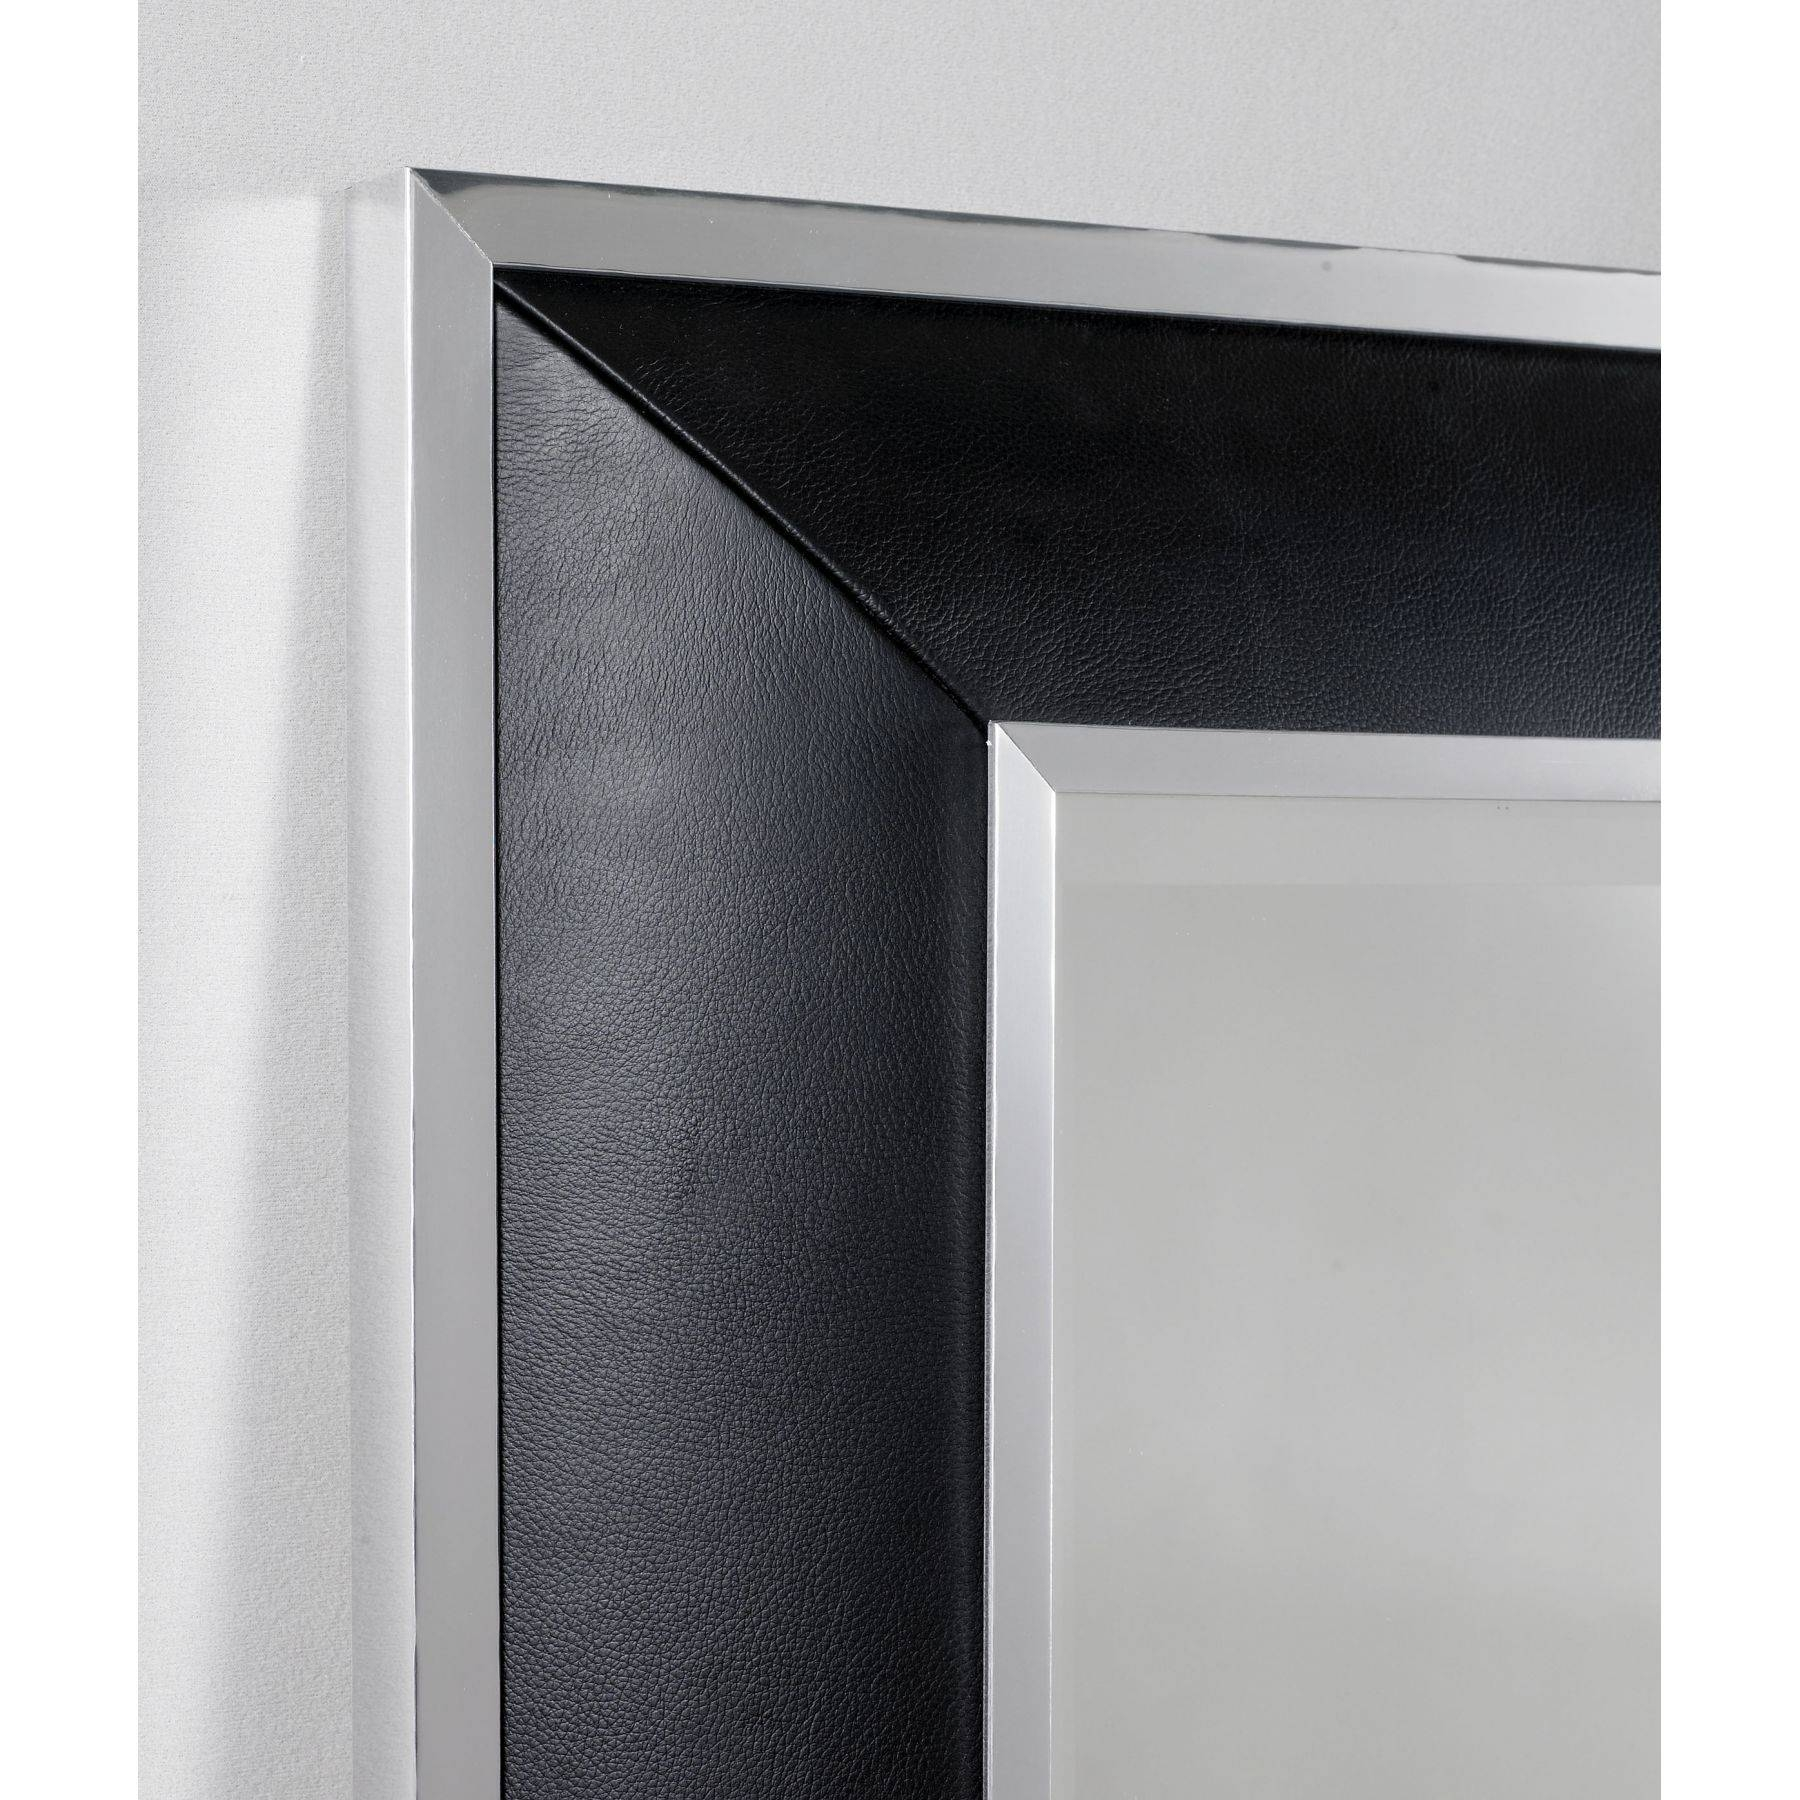 French Style Black Ash Leather Mirror Regarding Wall Leather Mirrors (View 15 of 15)